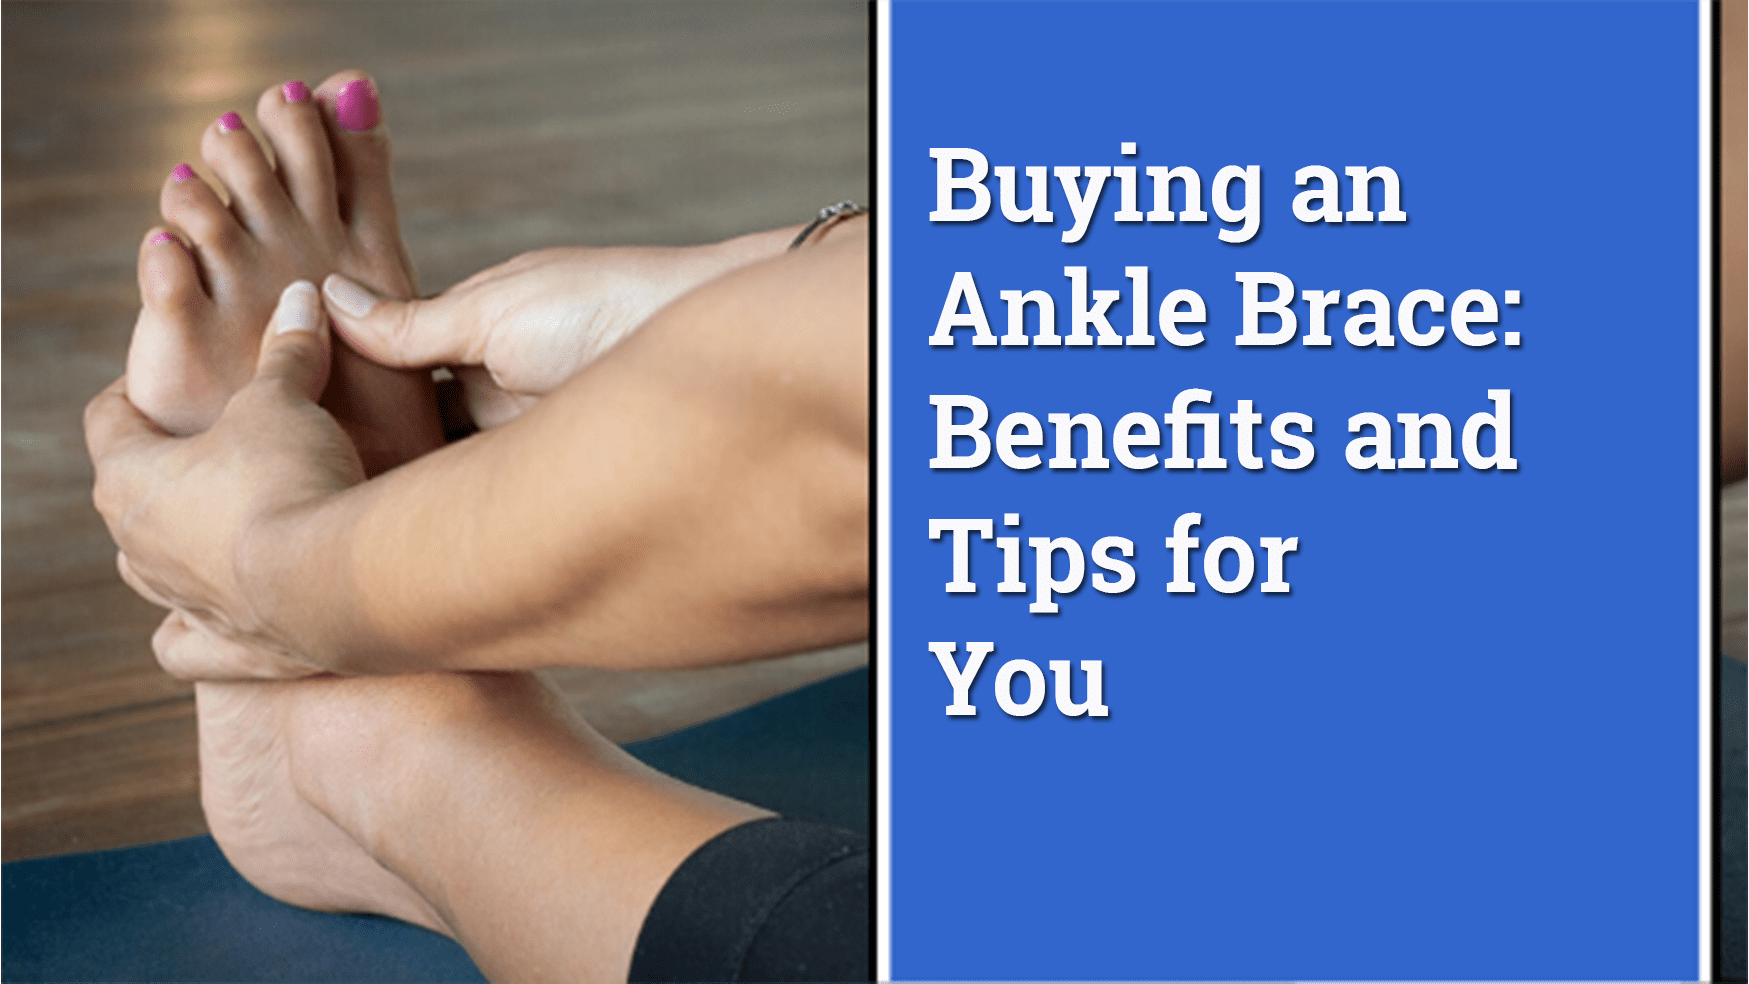 Buying An Ankle Brace - Benefits And Tips for You 2020